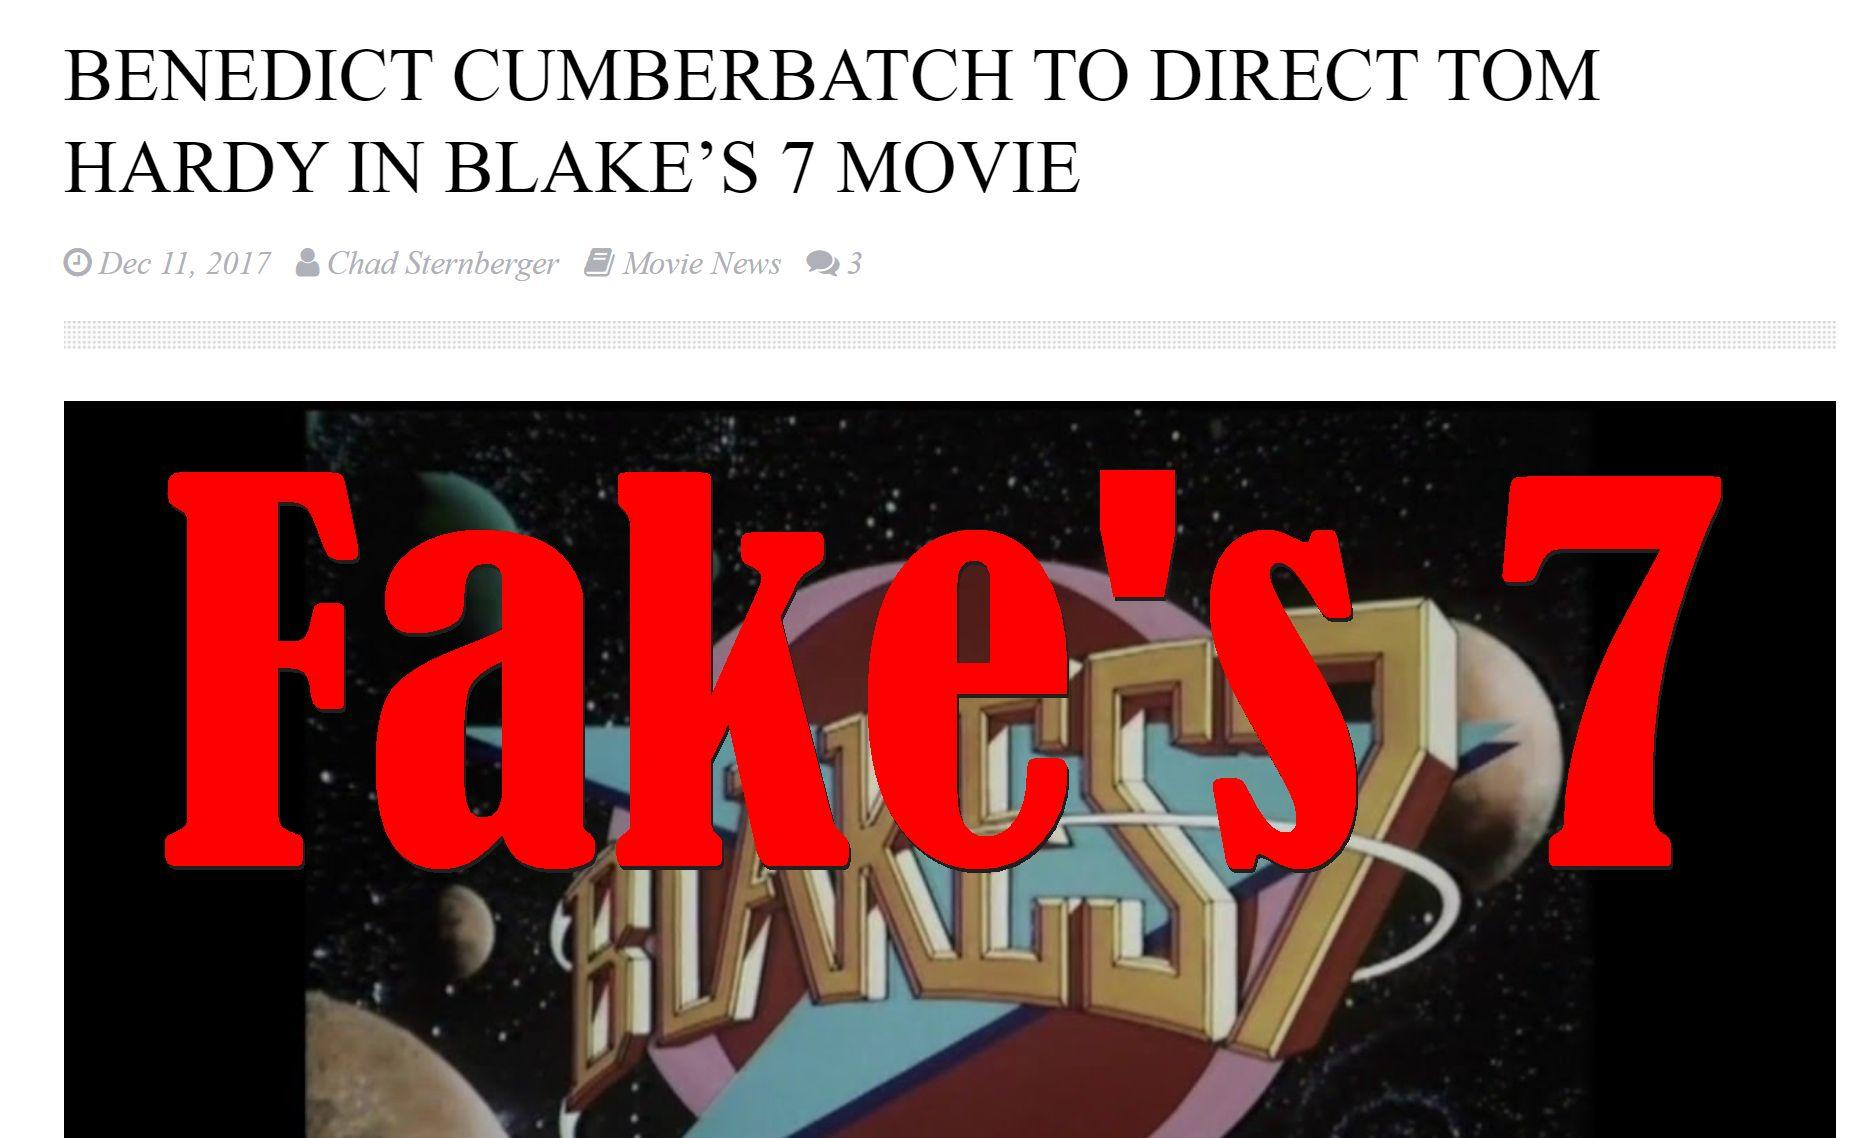 Fake News: Benedict Cumberbatch NOT To Direct Tom Hardy In Blake's 7 Movie